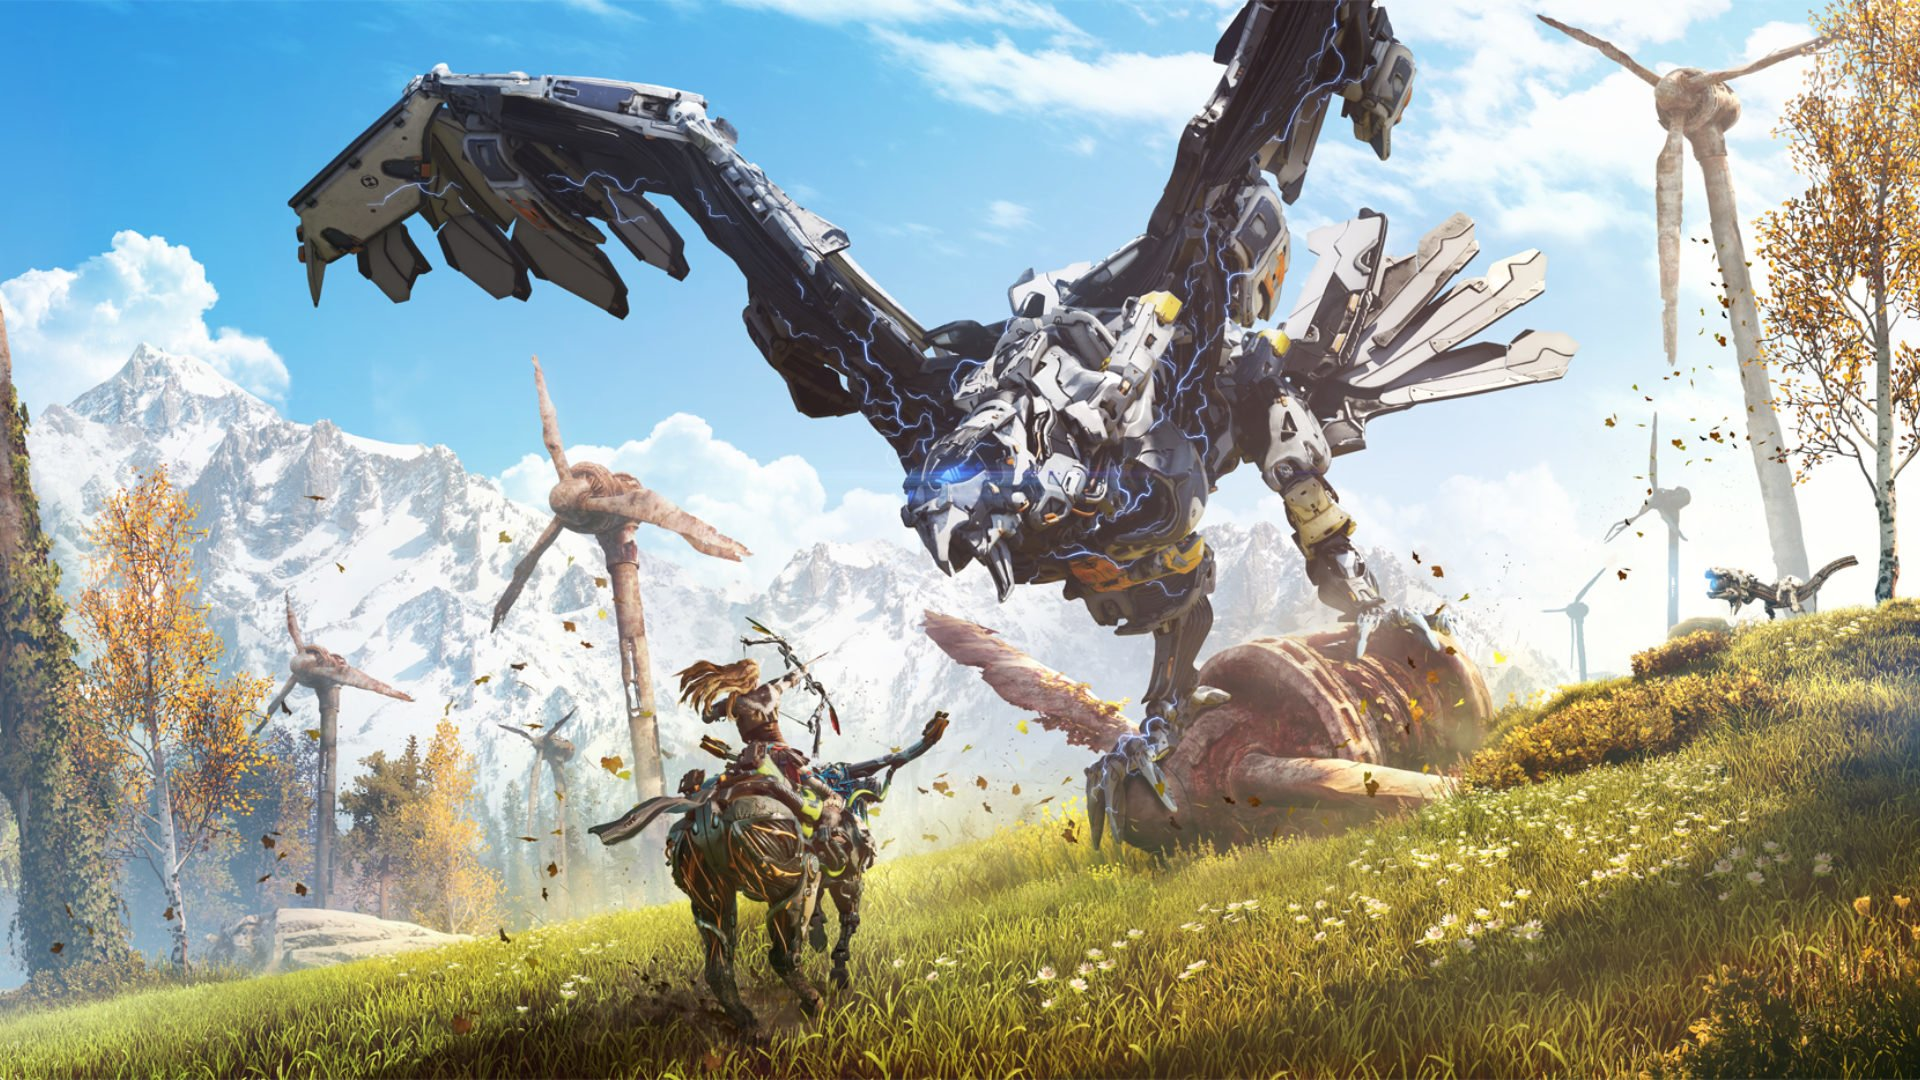 horizon zero dawn is turning one year old and players have killed a